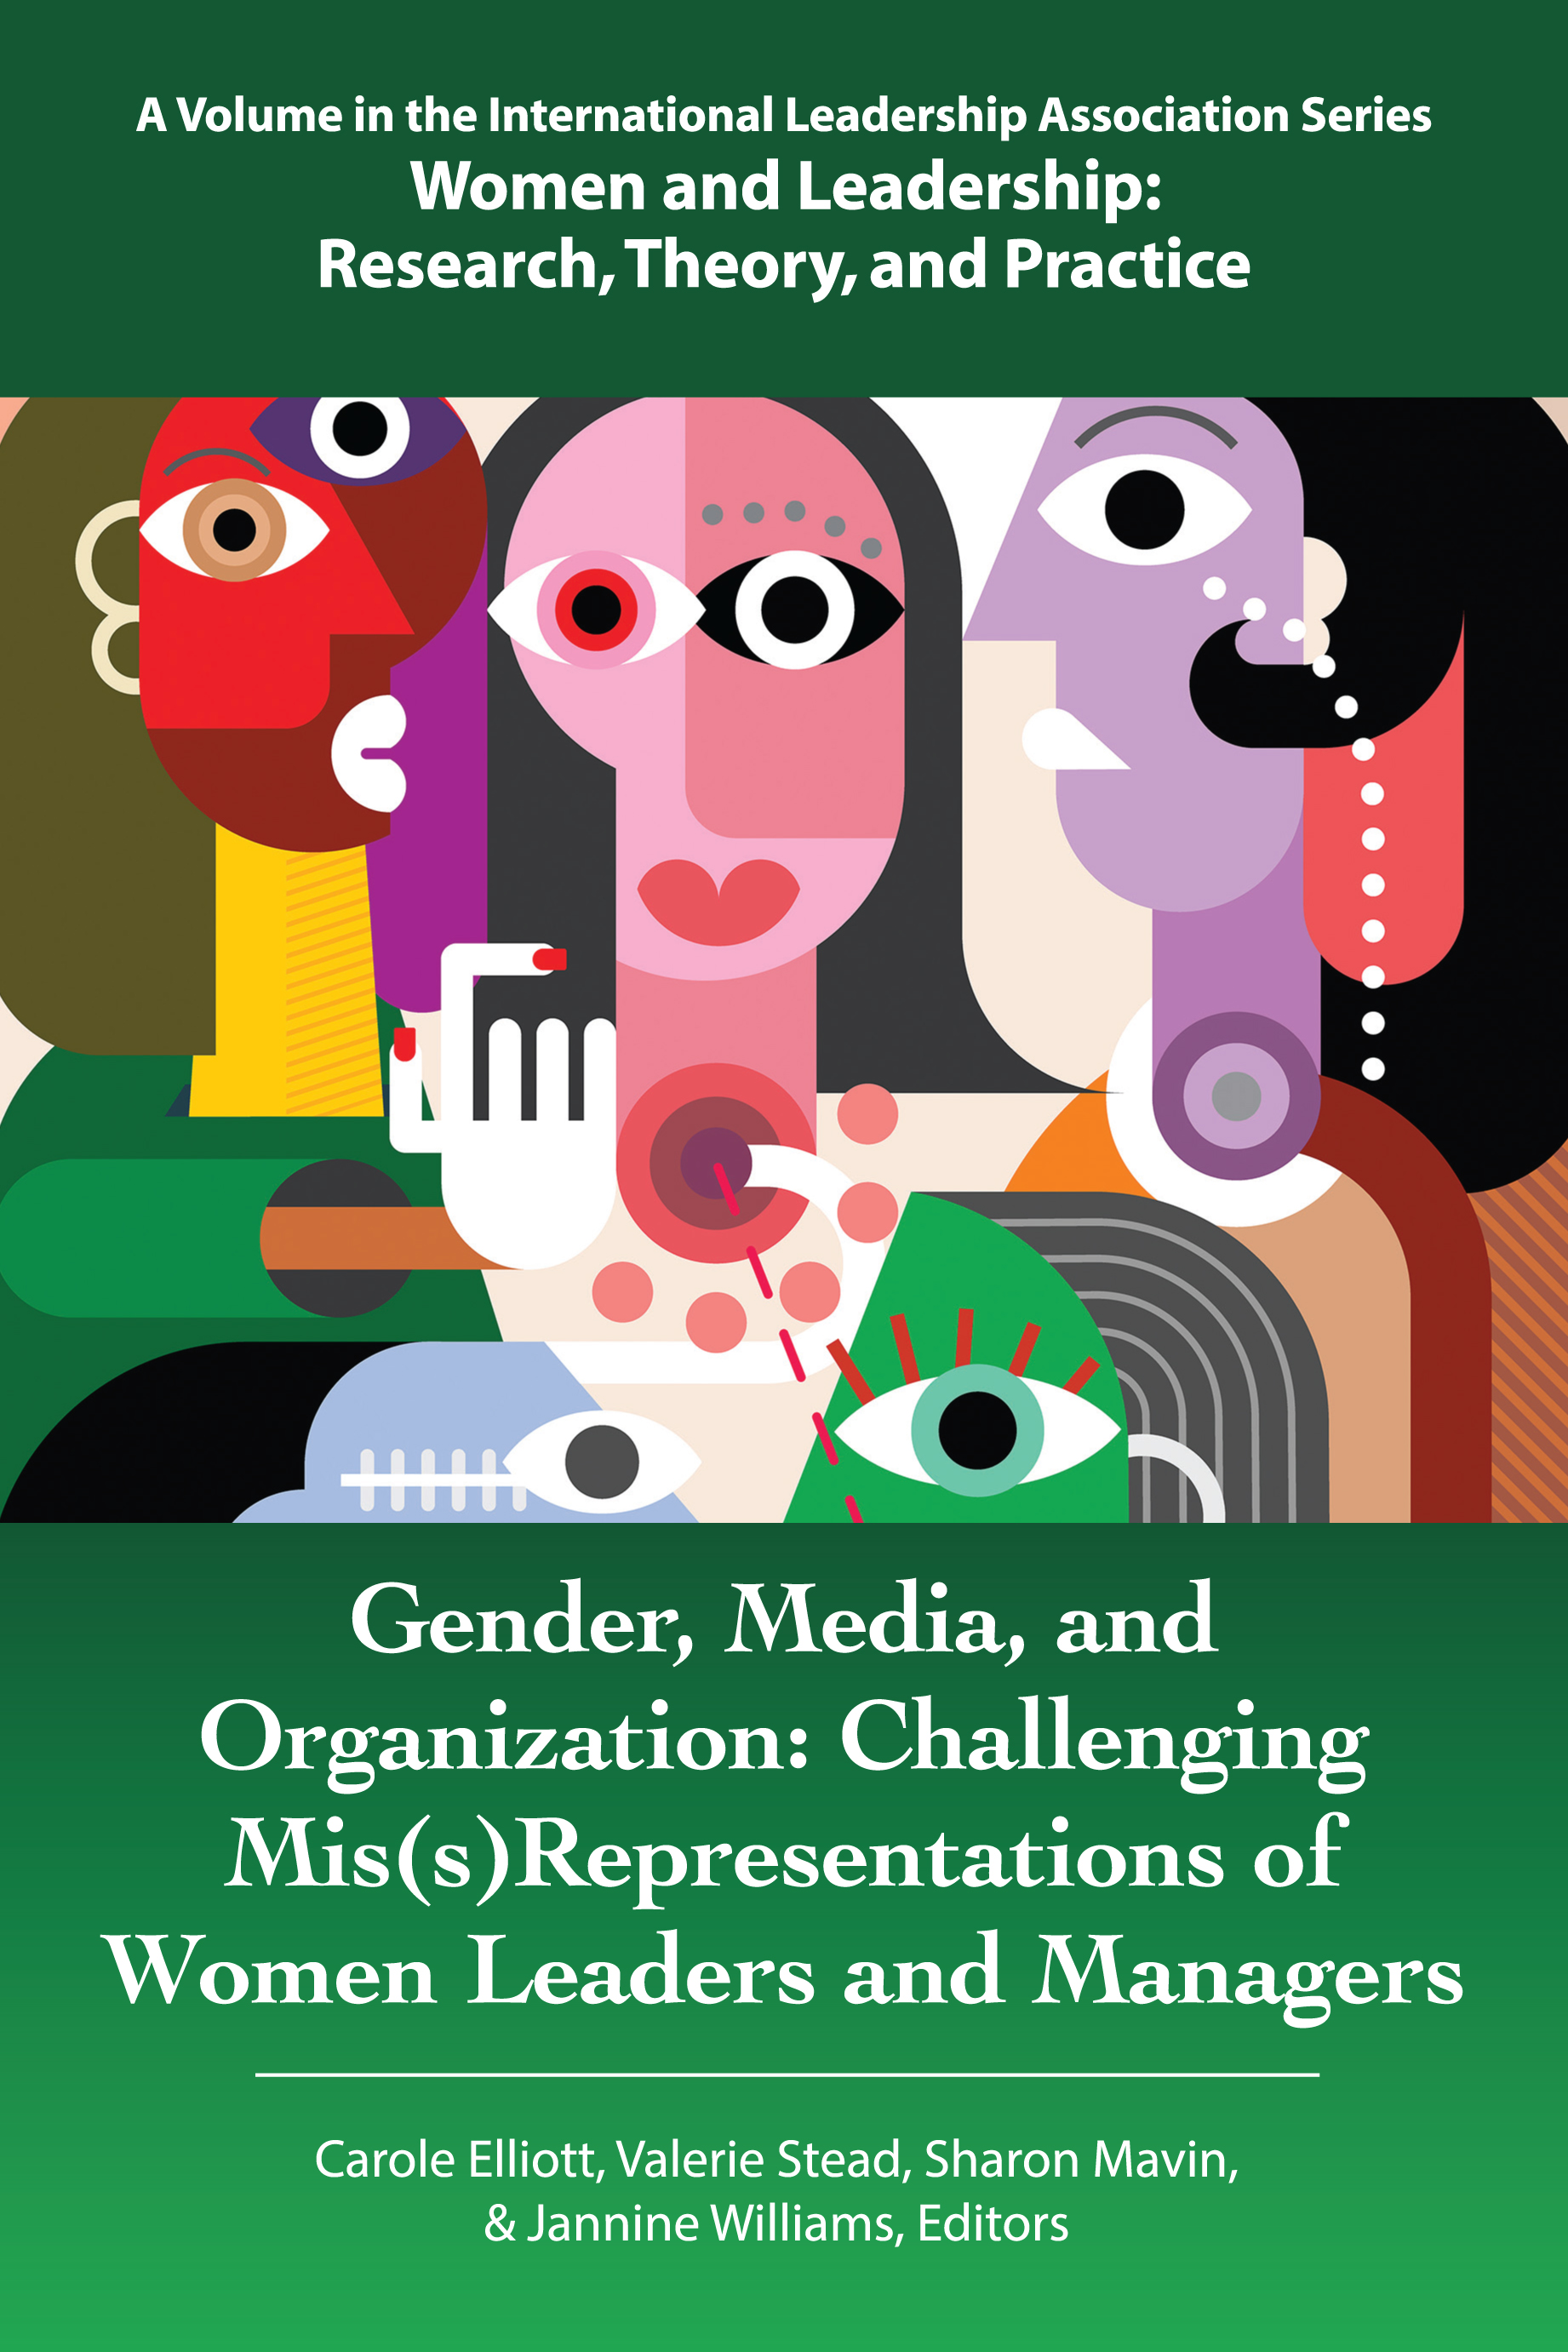 Gender, Media, and Organization: Challenging Mis(s) Representations of Women Leaders and Managers Bookcover